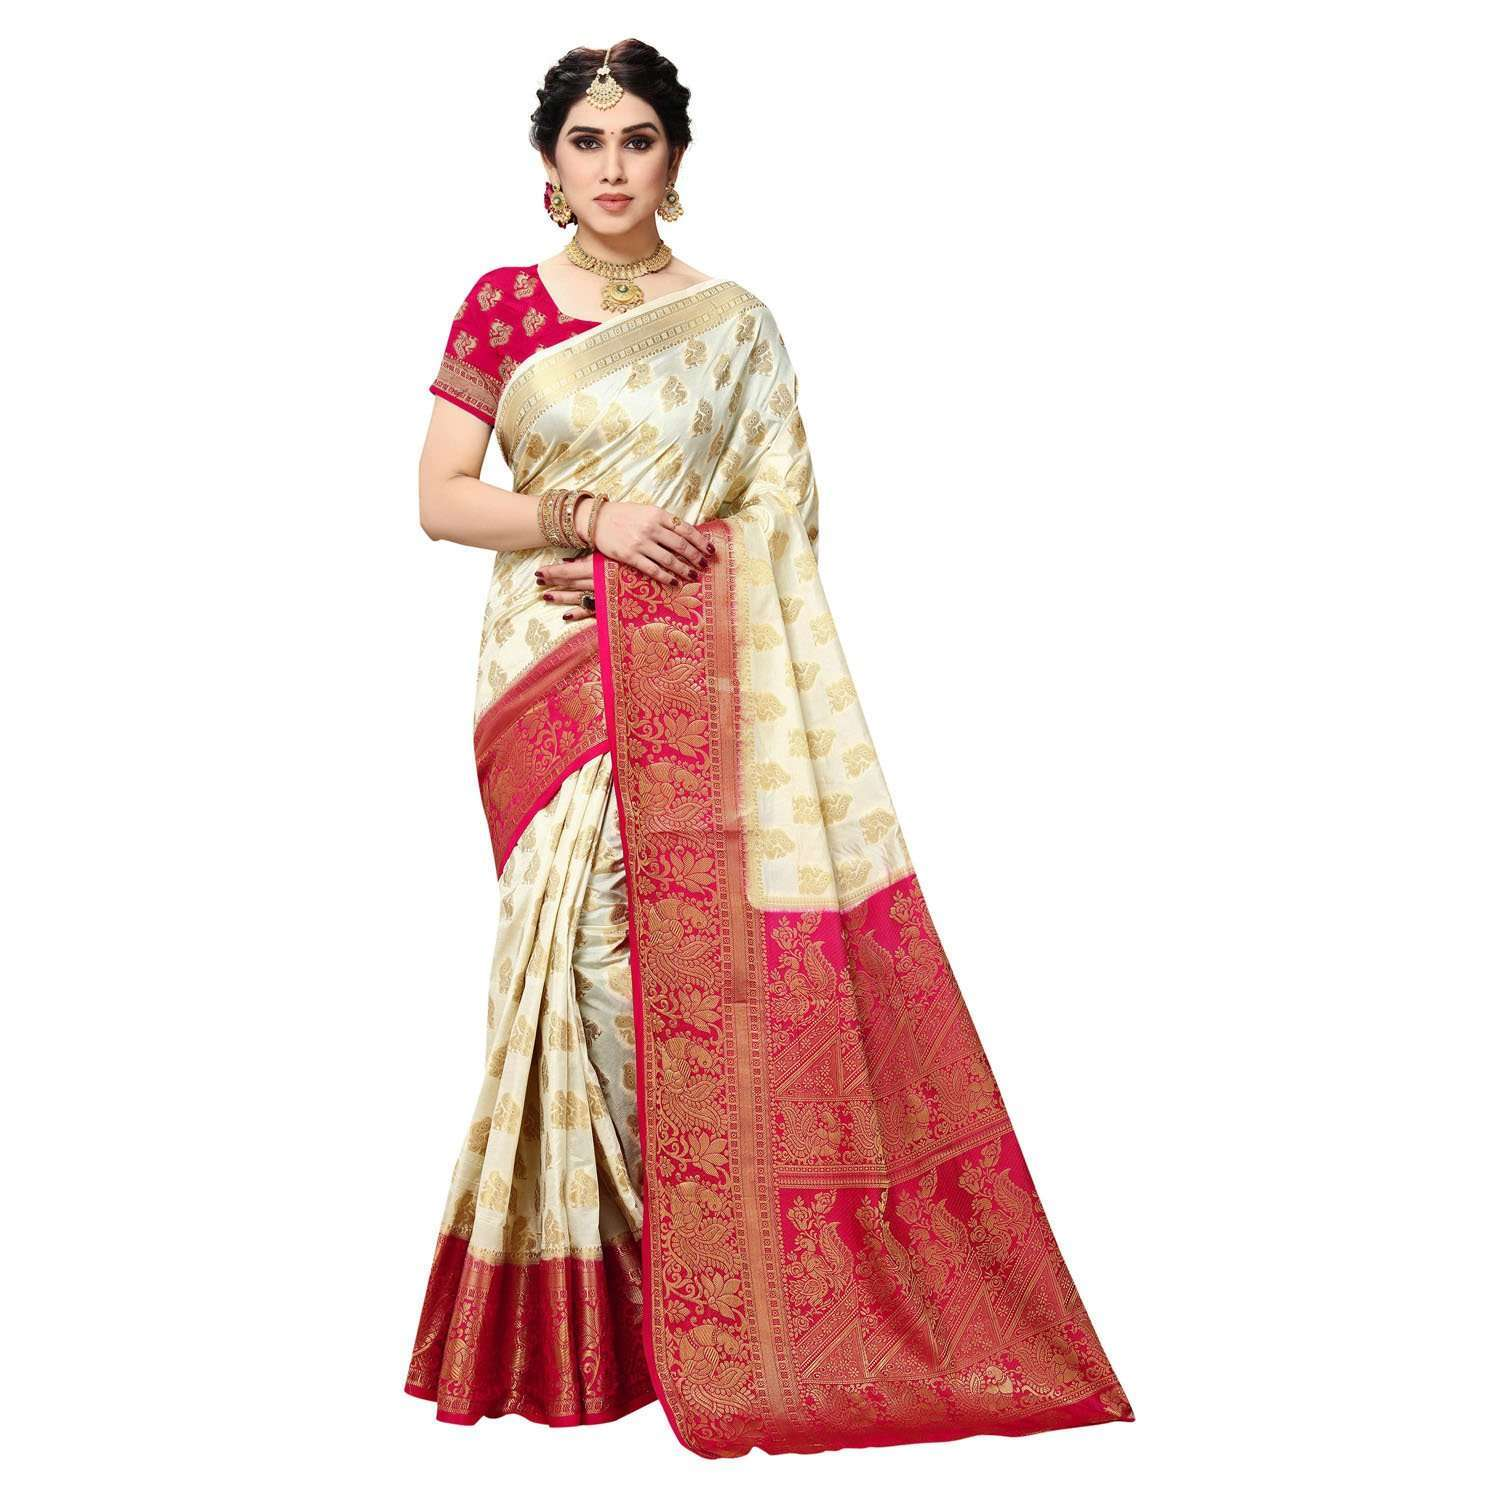 arars Women's Kanchipuram Pattu banarasi Silk Saree With Blouse (442_cream&rani )